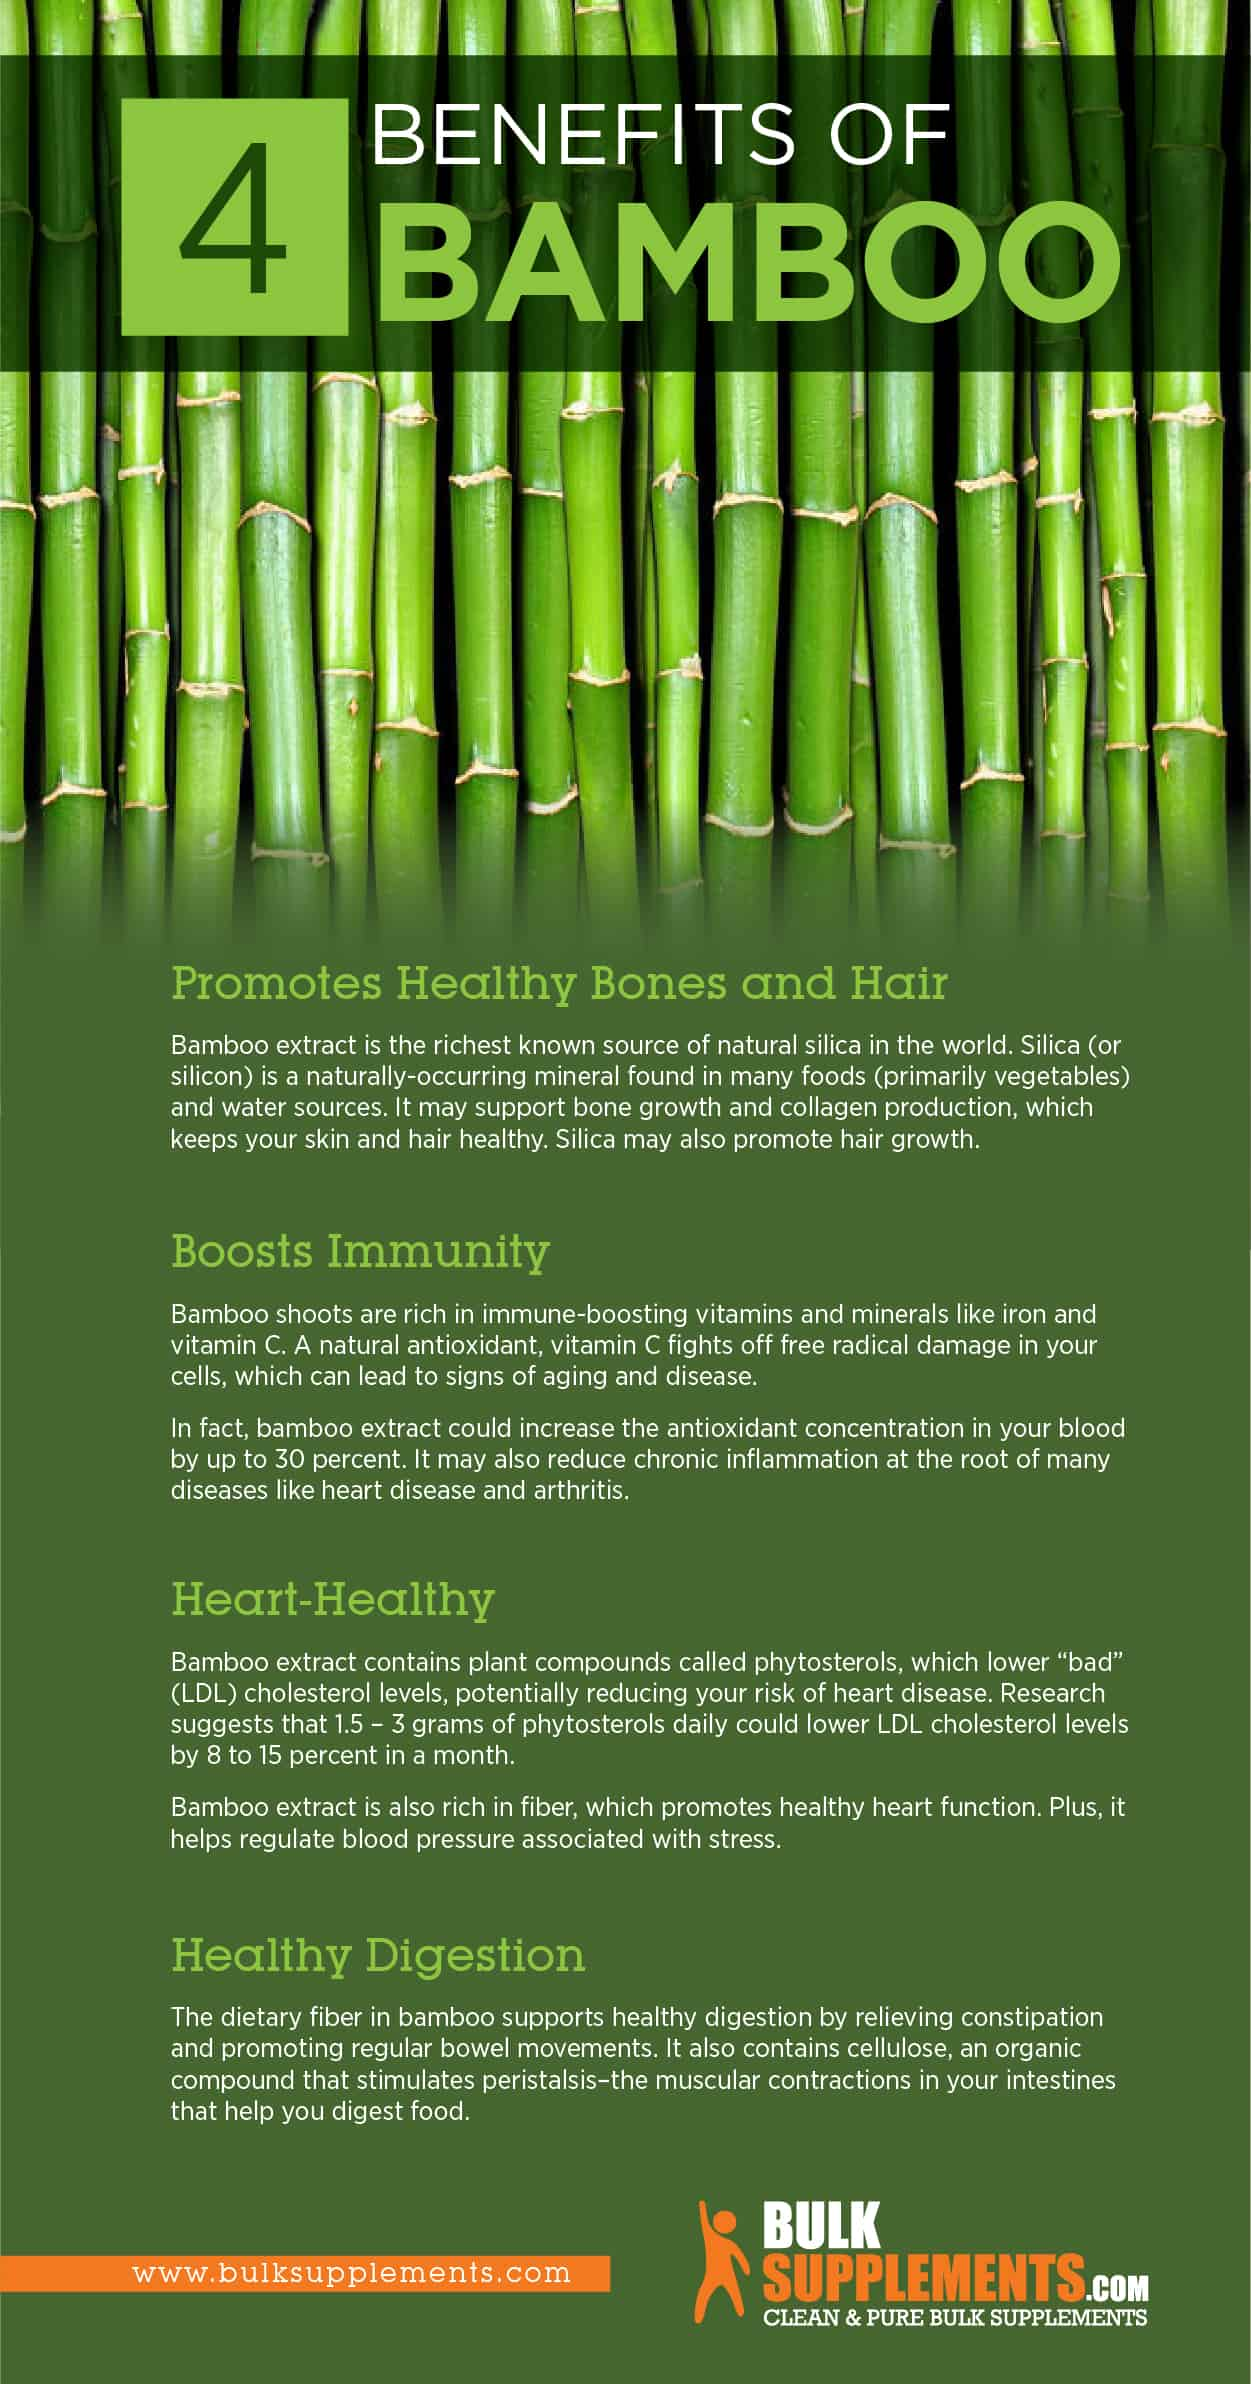 Bamboo Benefits